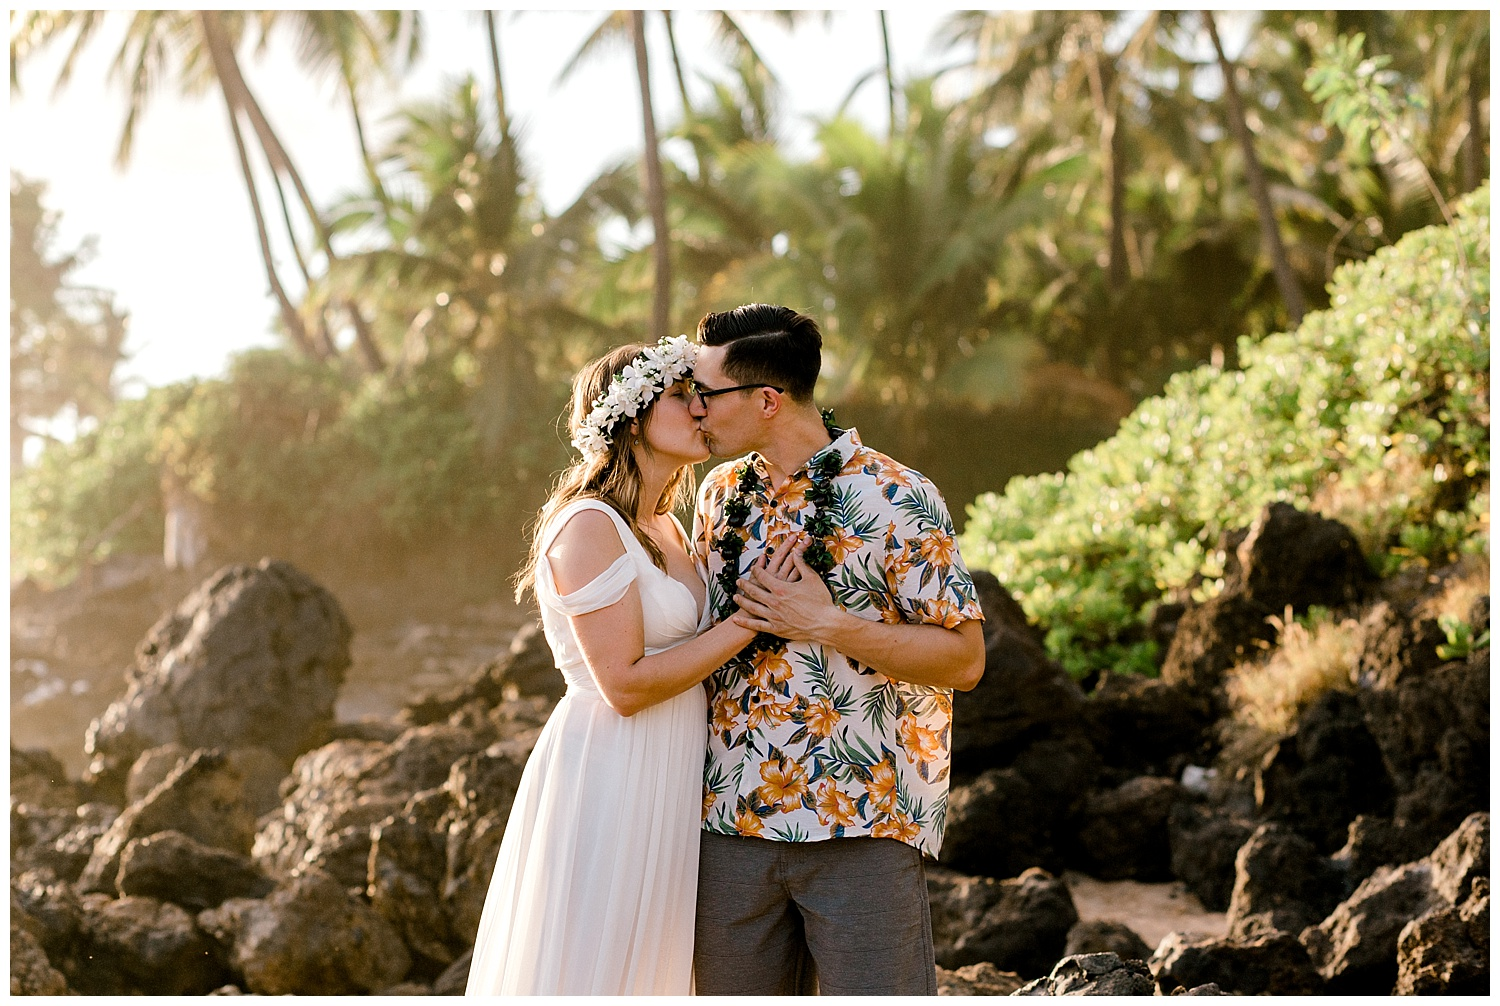 Maui-Elopement-Photography-Paipu-Beach-Maui_0028.jpg